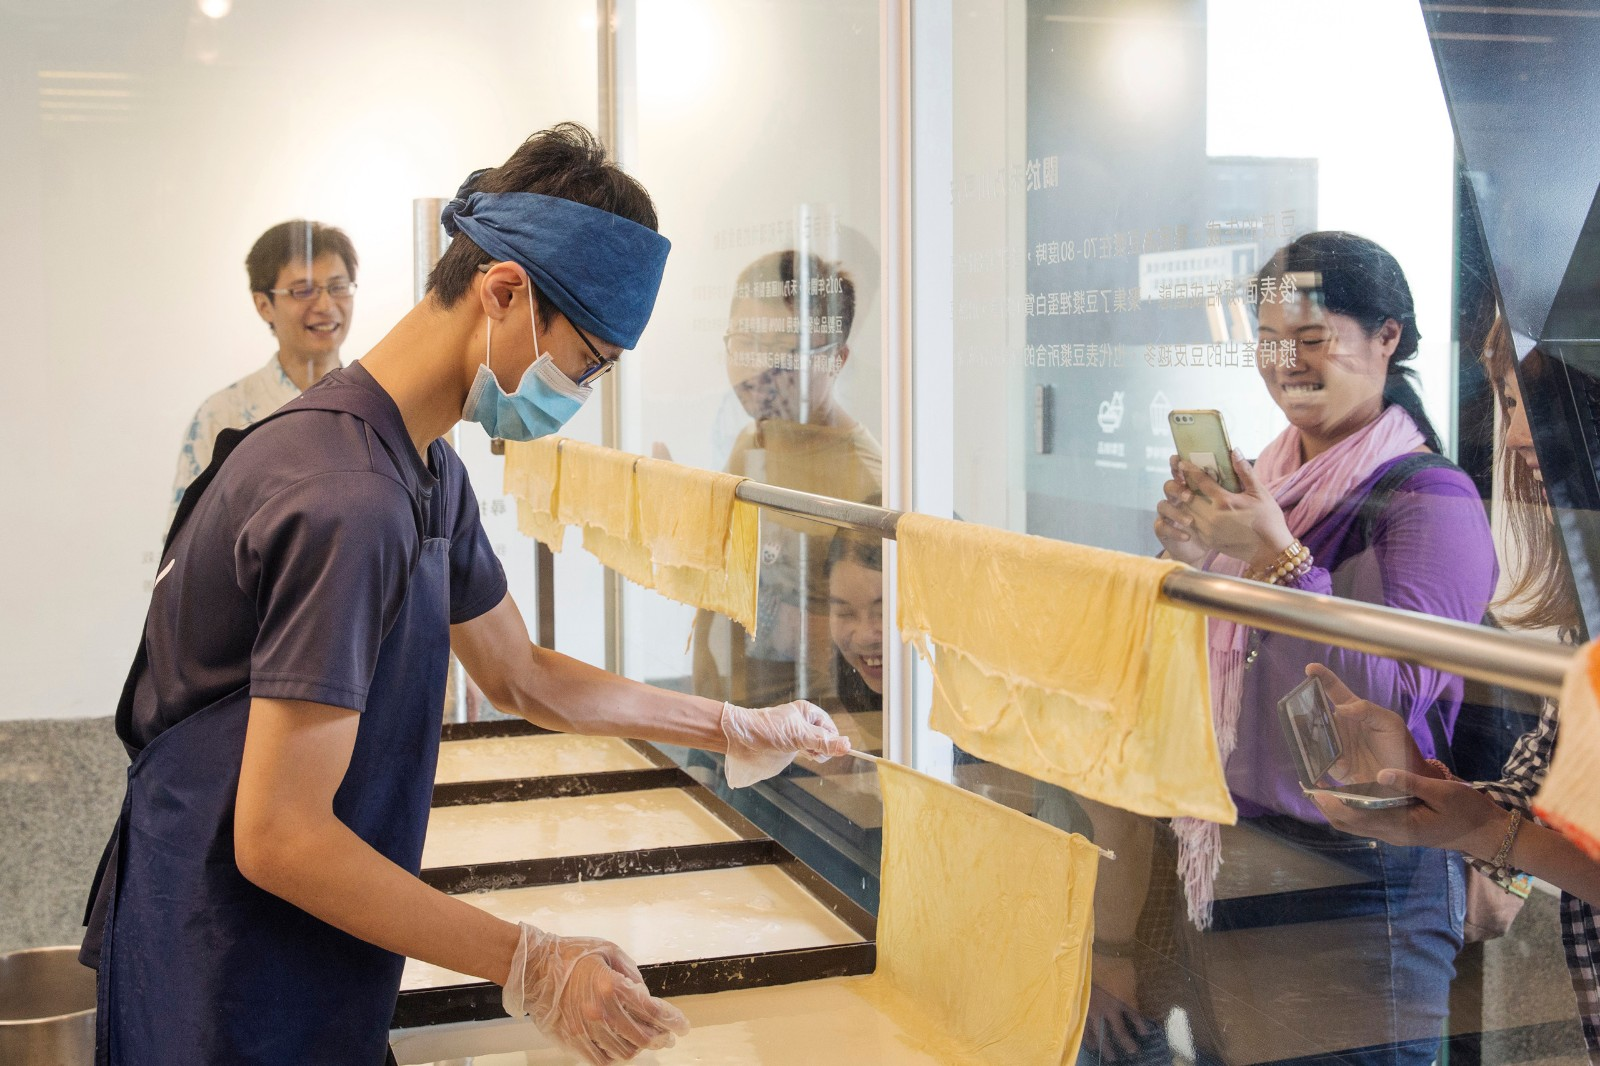 cultural experiencing activities are planned for tourists to sense the local artistic and cultural aesthetics as well as the vitality of the community through the visits and DIY experiences.   Taipei Cultural experience   CAN Culture